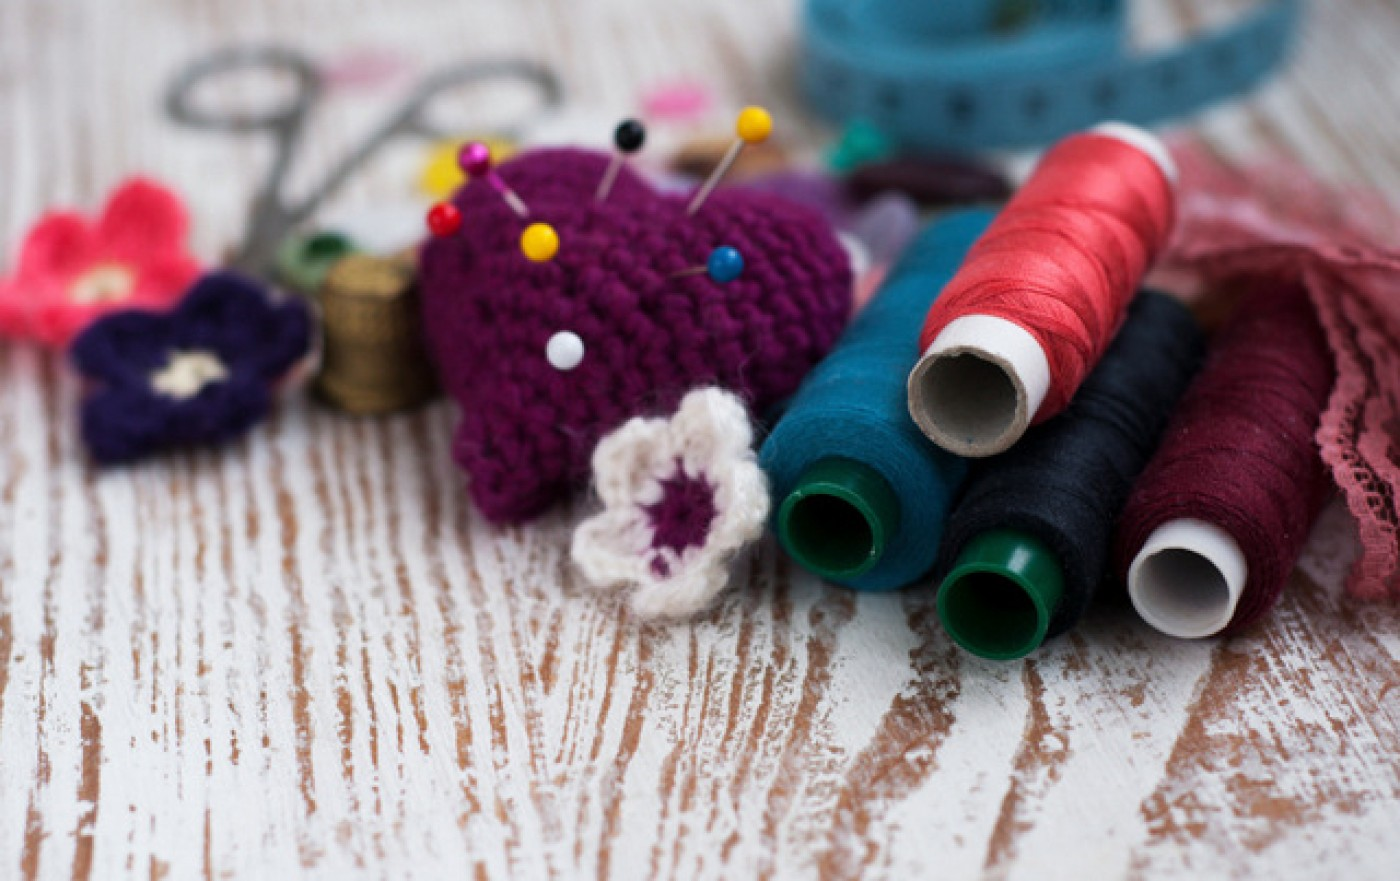 Sew and Sew craft group on the Camposol Urbanisation